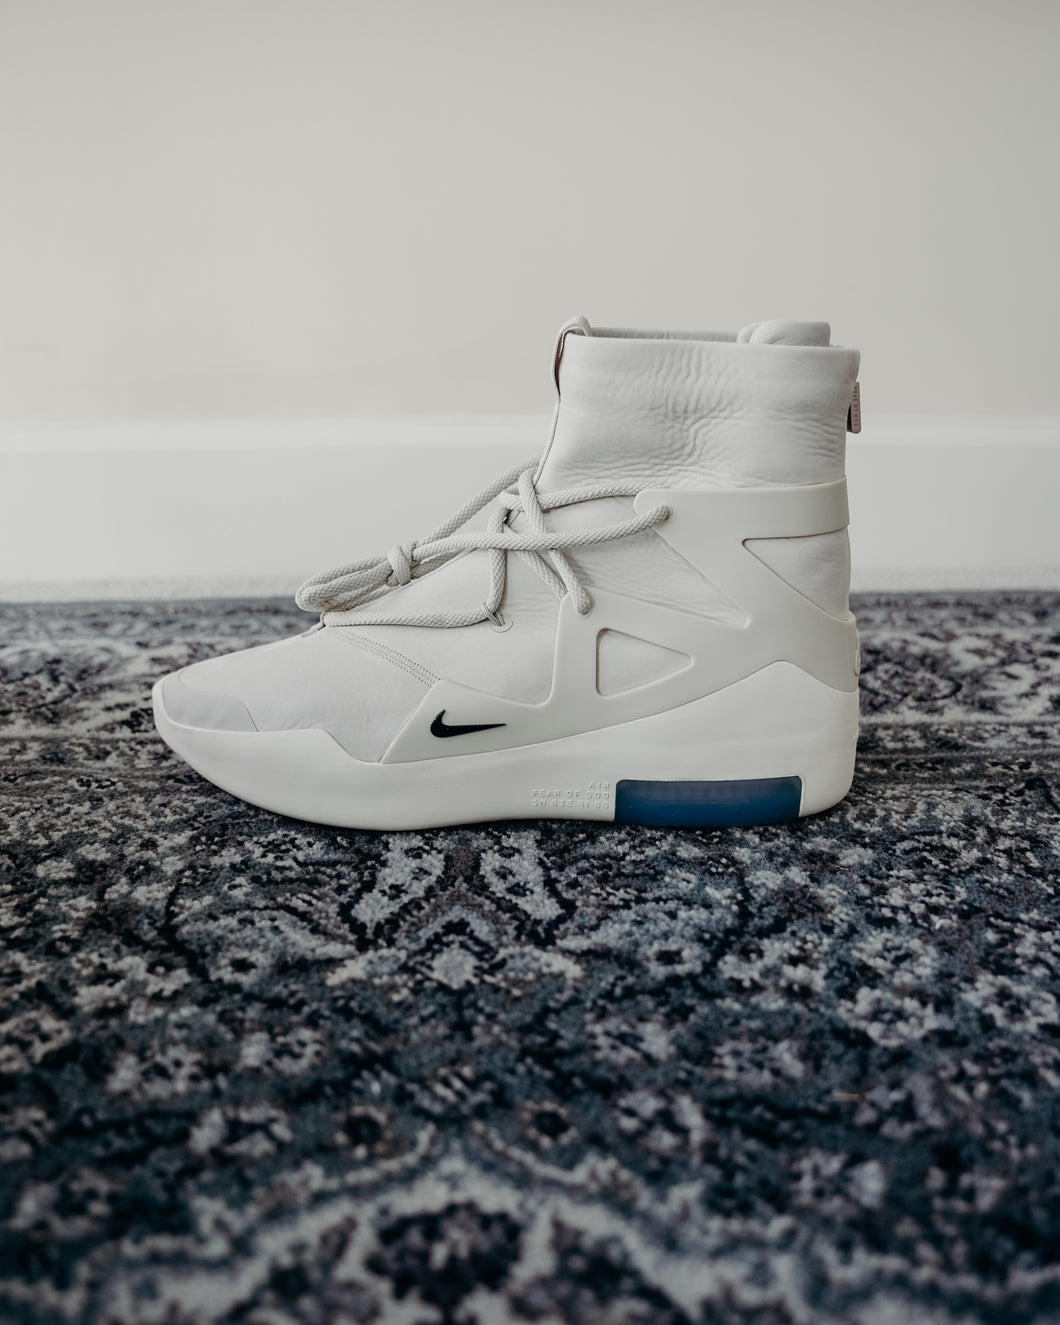 Nike Air Fear Of God 1 Sail Black Sz 12